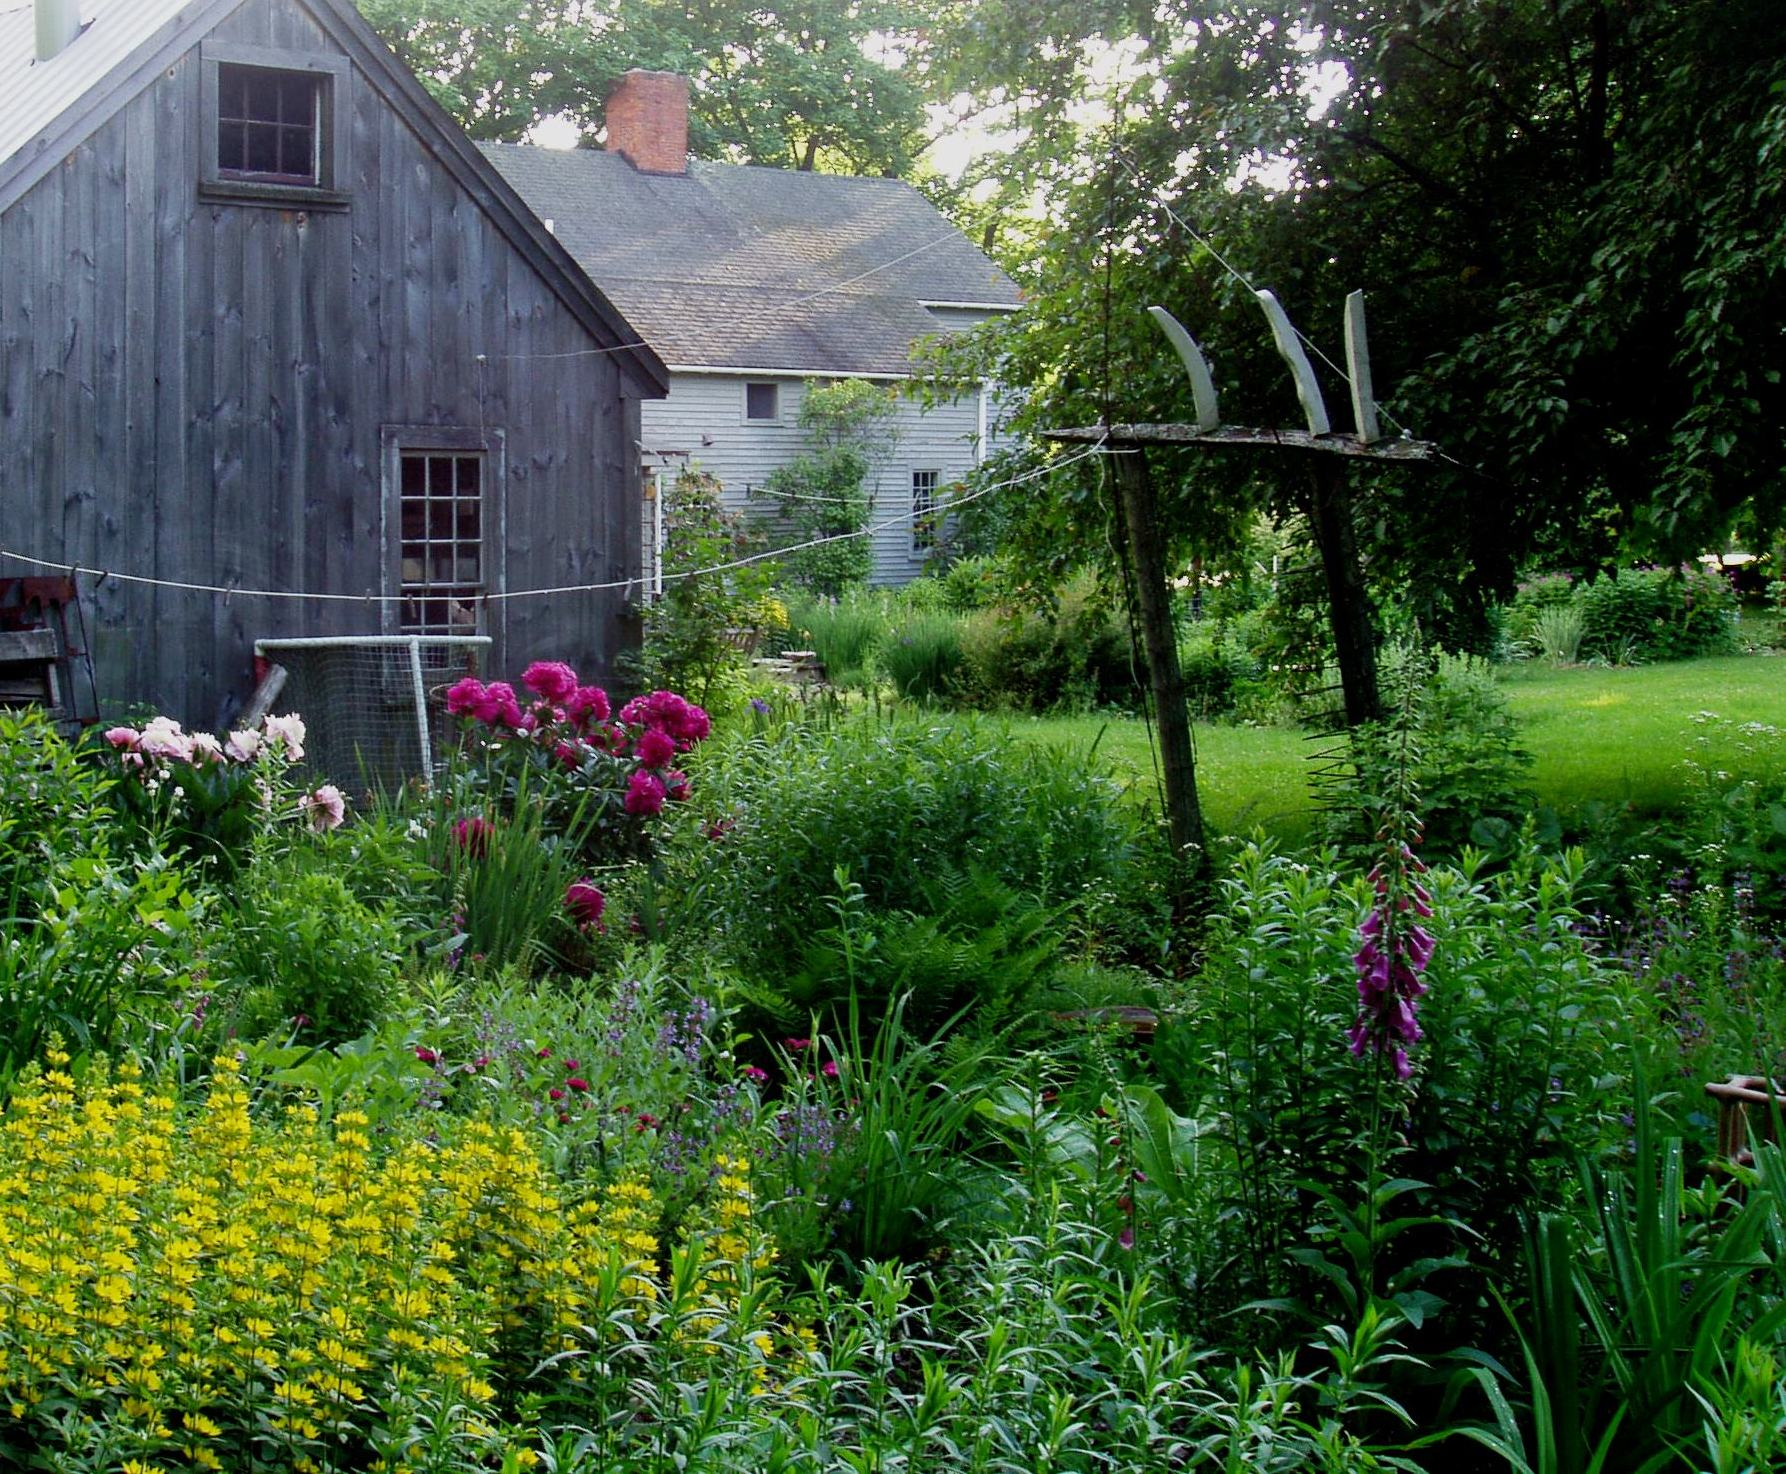 View of Don Williams' garden and studio in summer.